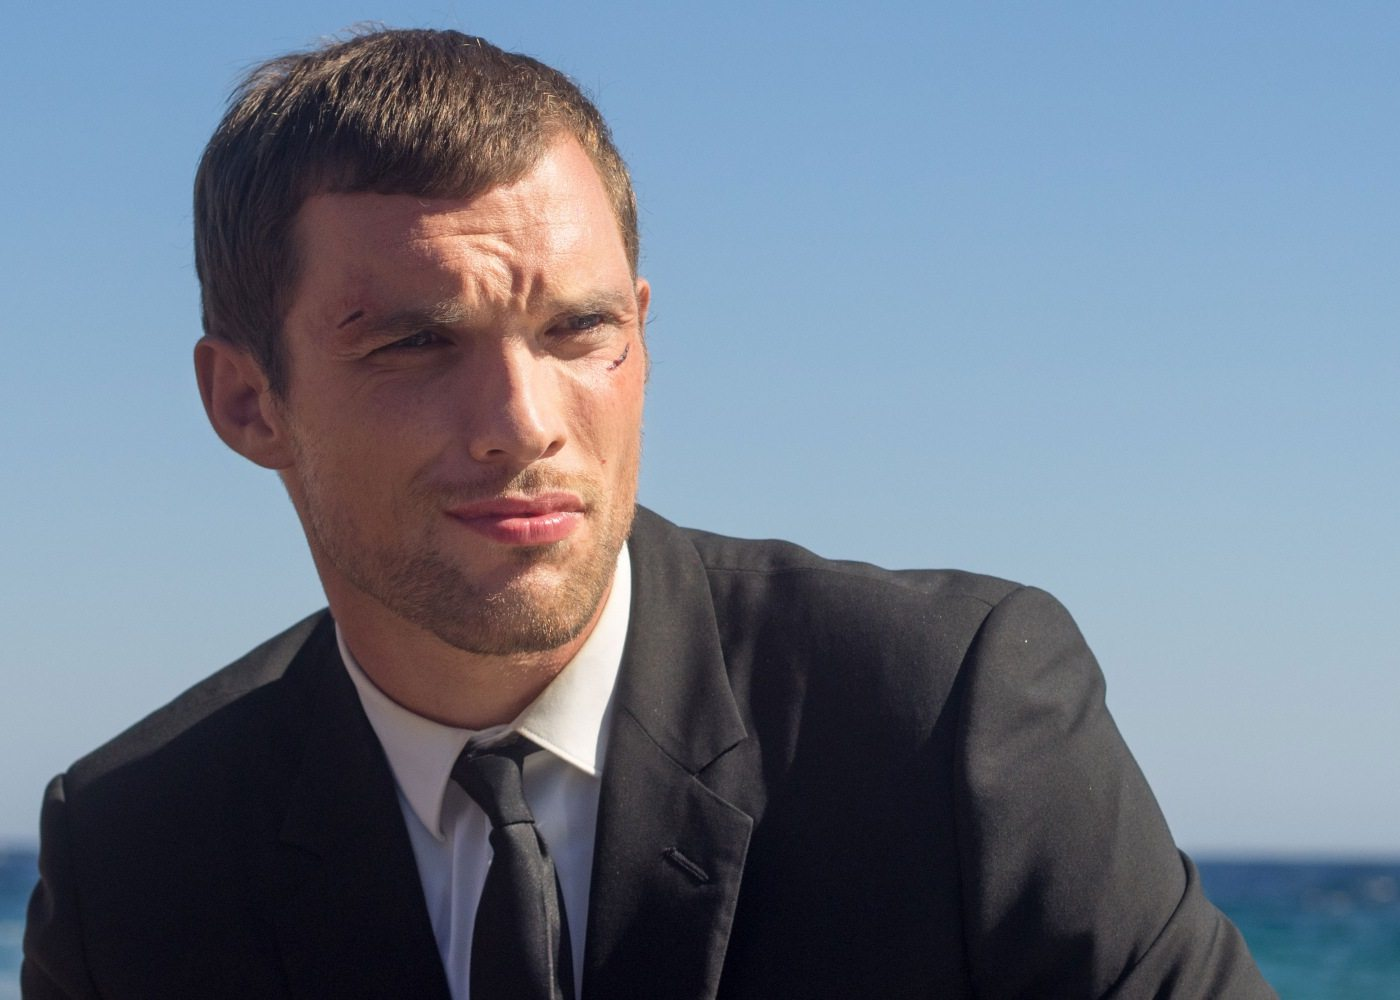 Actors of Color Praise Ed Skrein's Stand Against Whitewashing